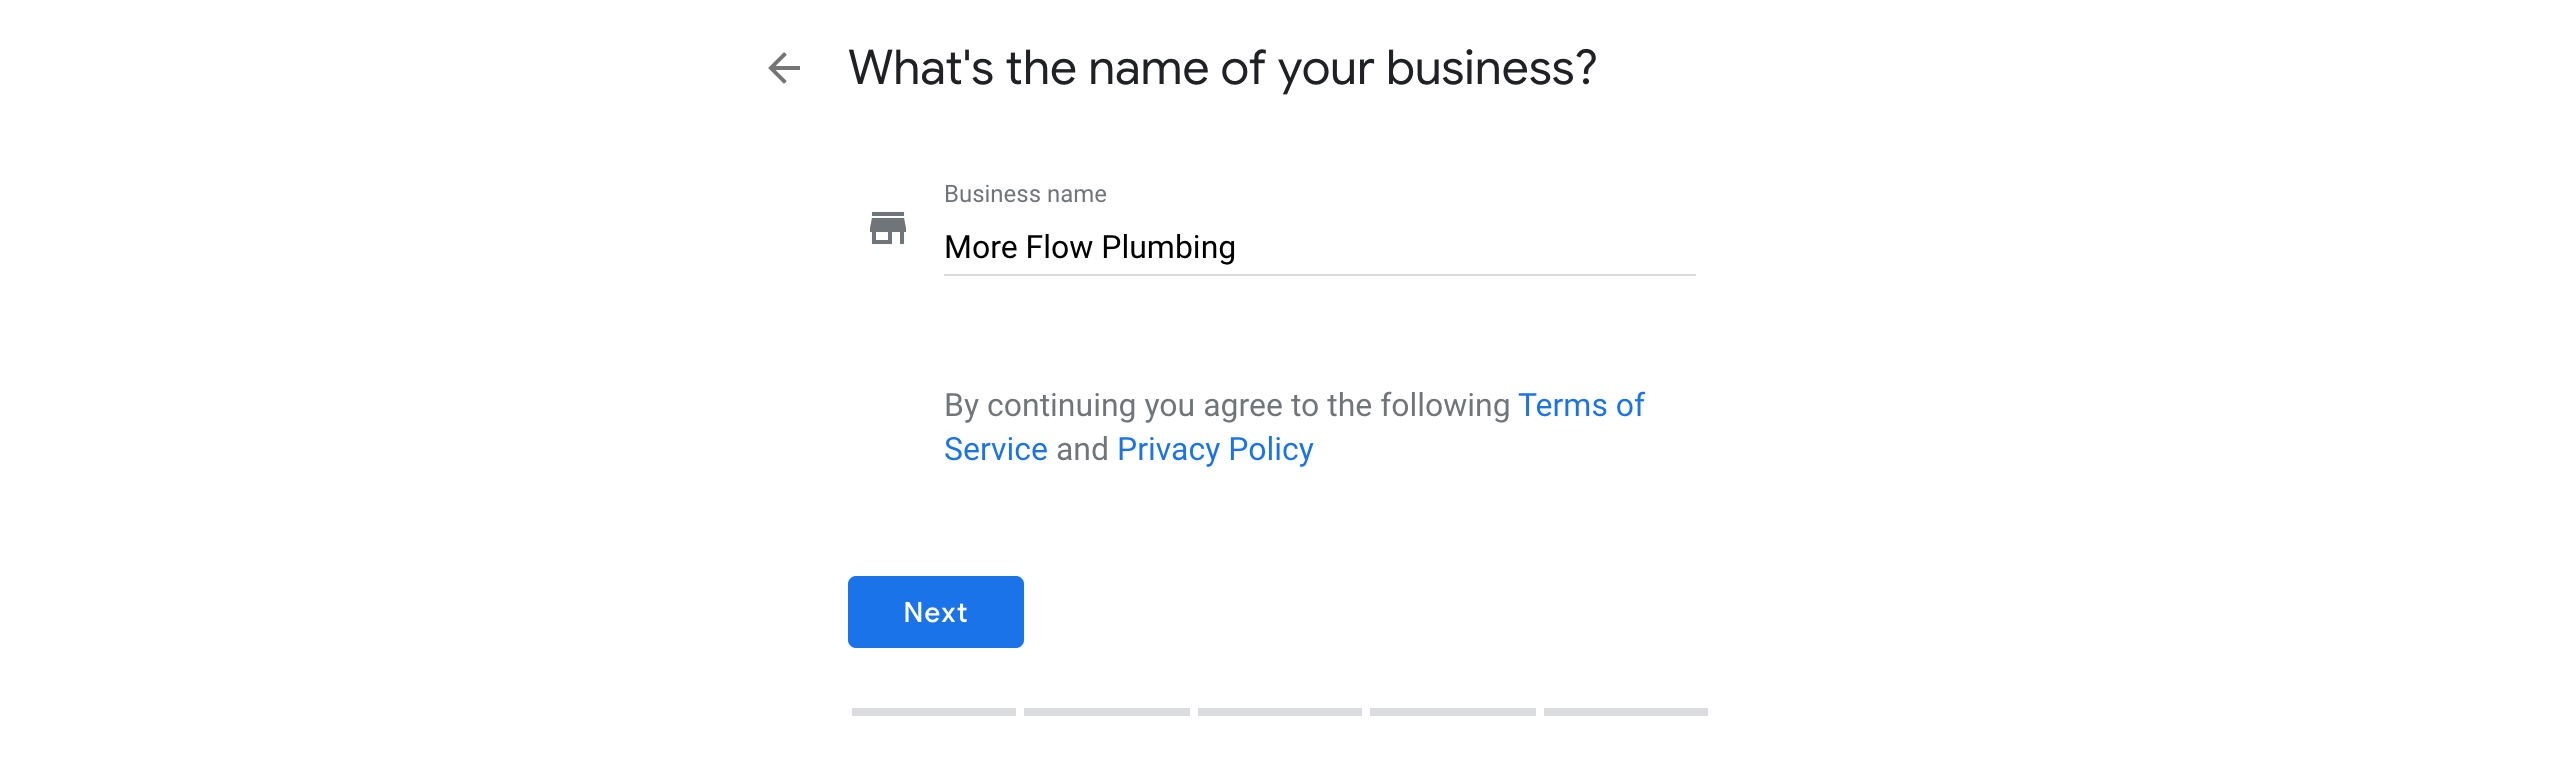 Confirming the business name during the Google My Business setup process.